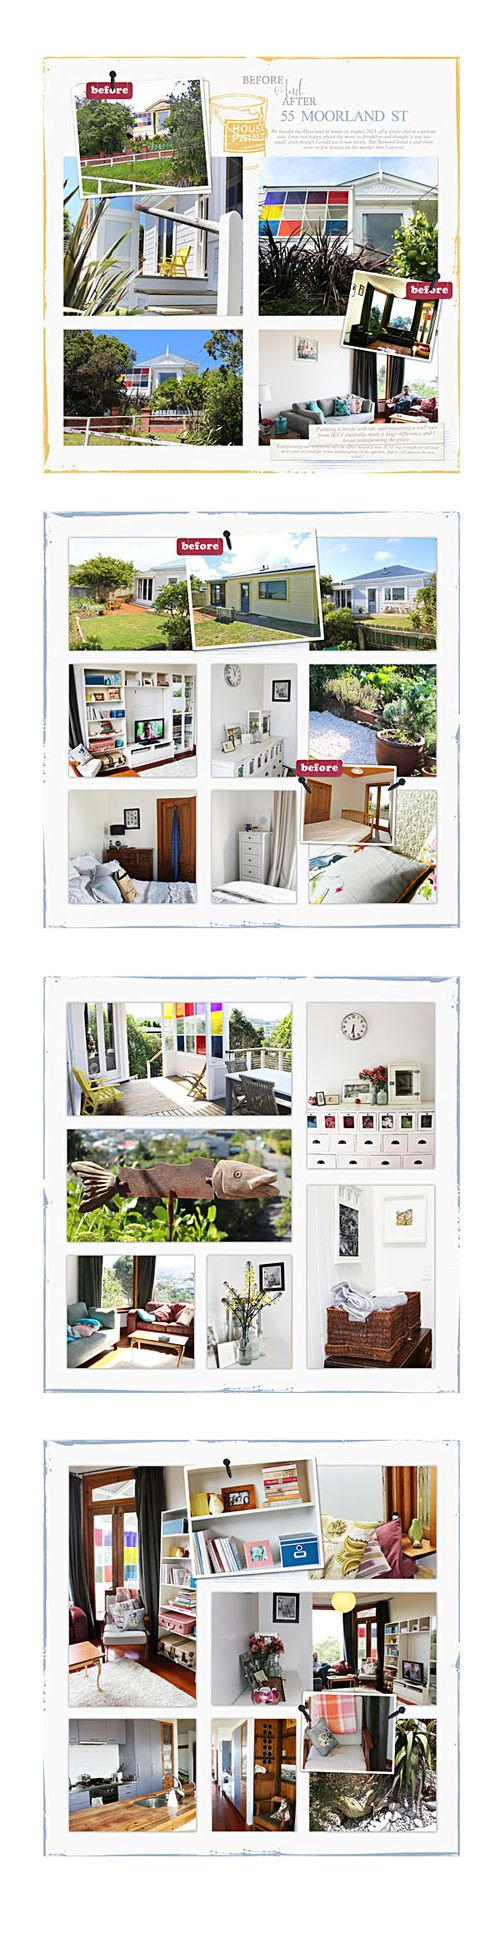 Scrap express 170 template before and after pages of home remodeling ...